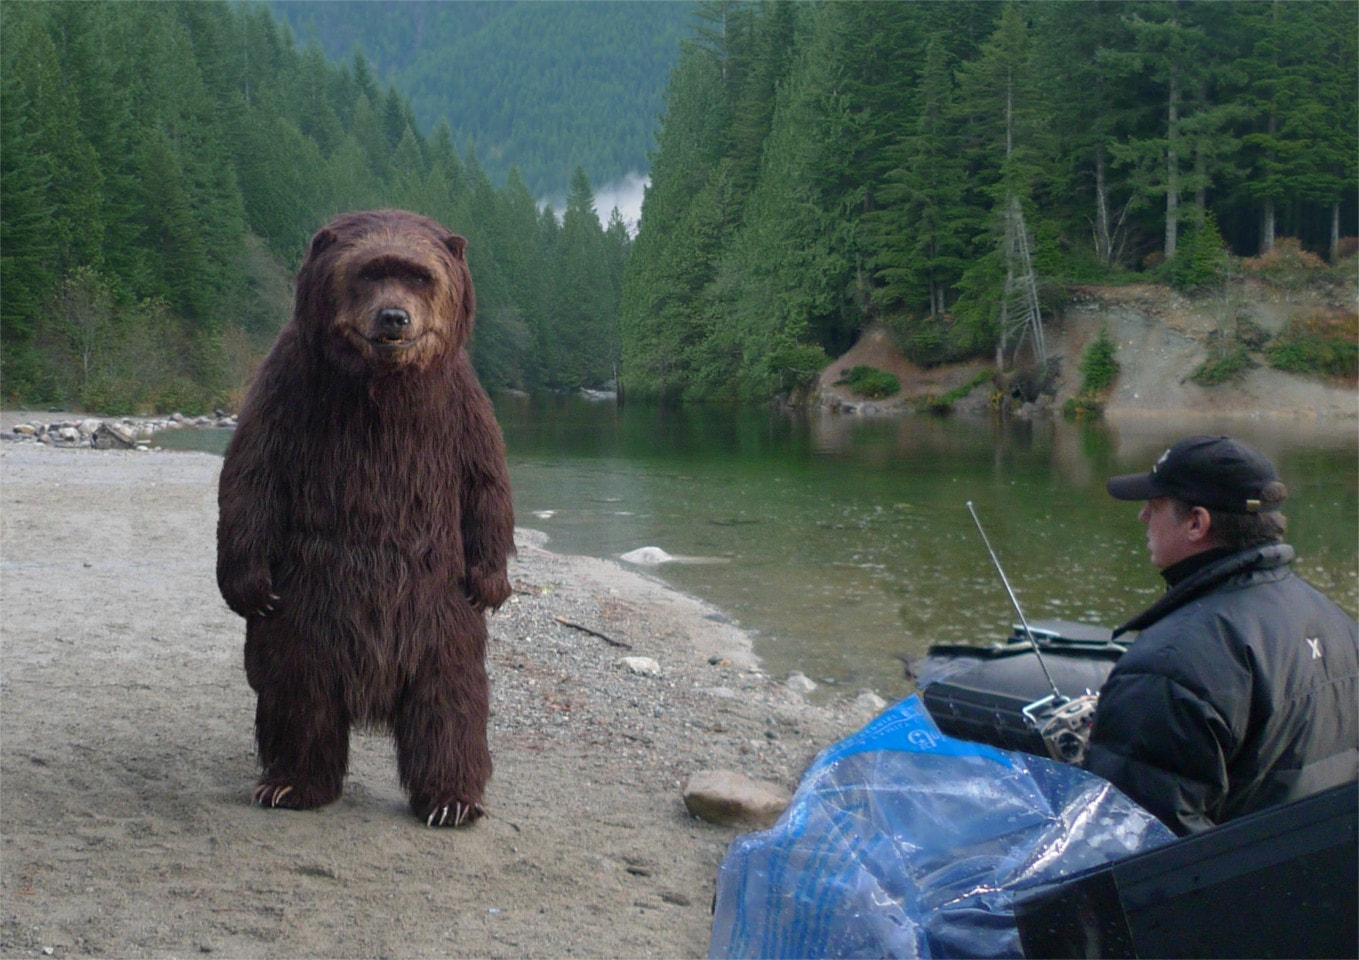 Animatronic bear being controlled